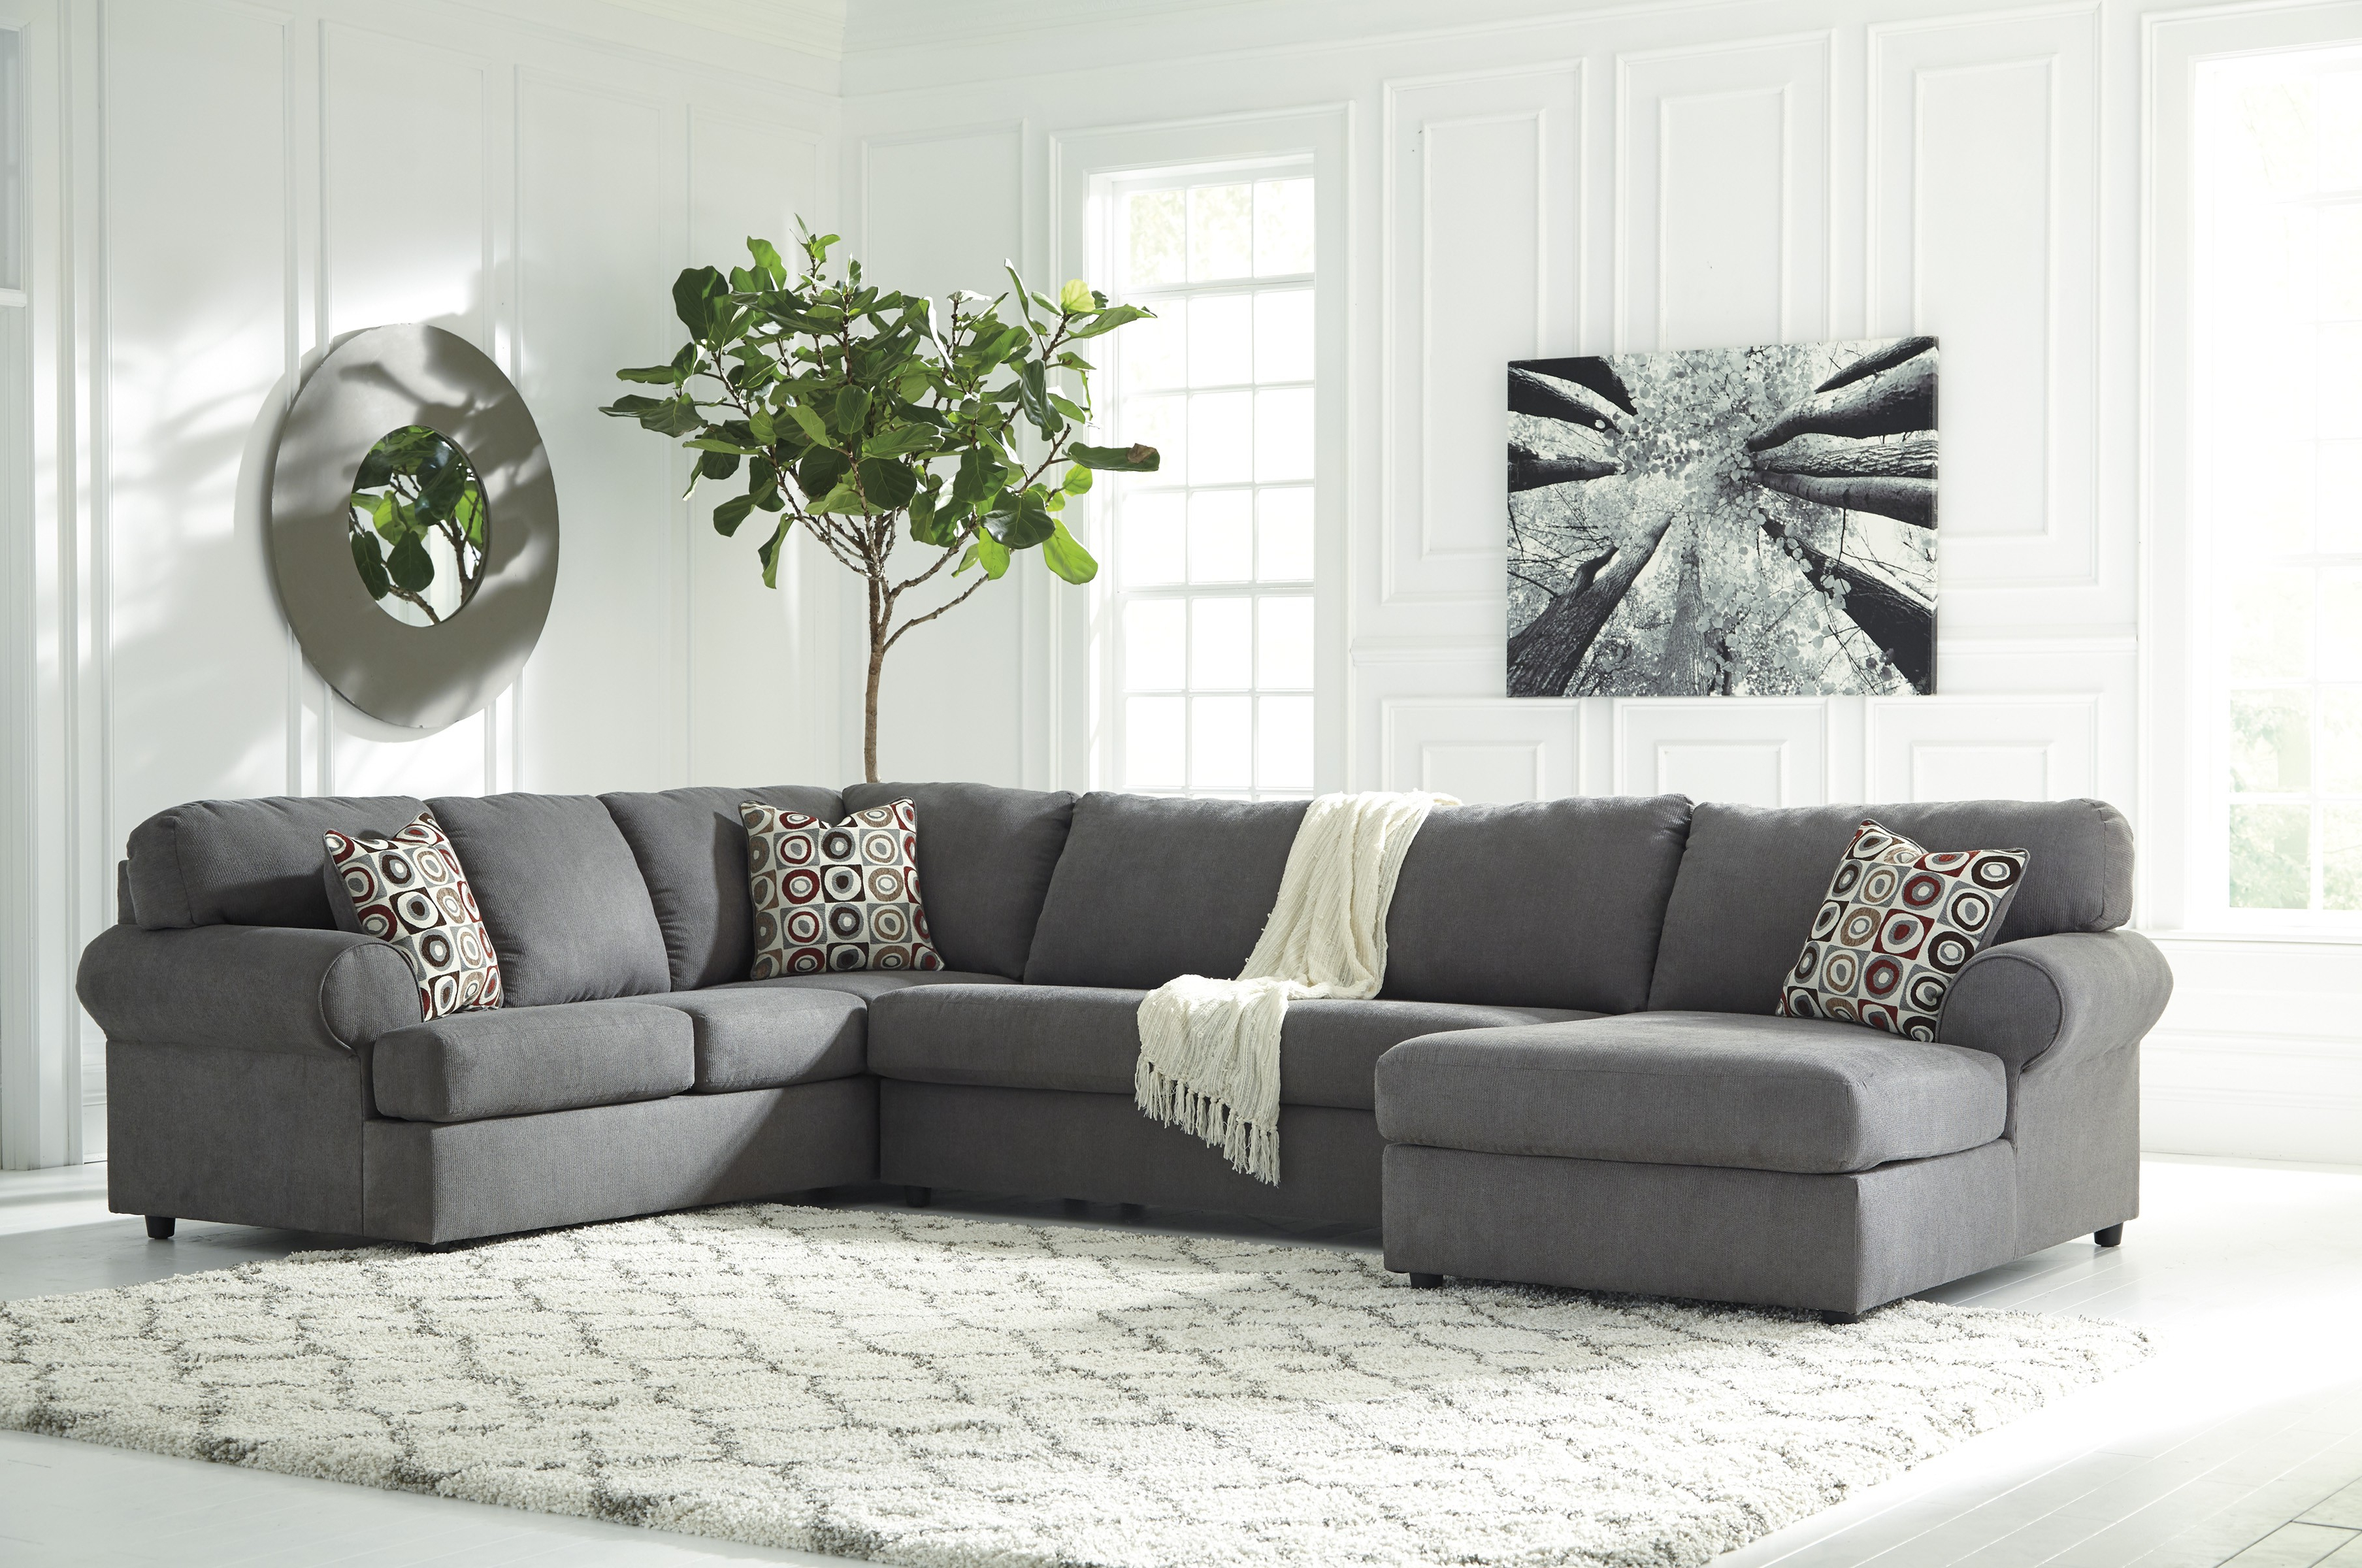 Sierra Foam Ii 3 Piece Sectionals Intended For Trendy Jayceon Steel 64902 3 Pc Sectional (View 15 of 20)